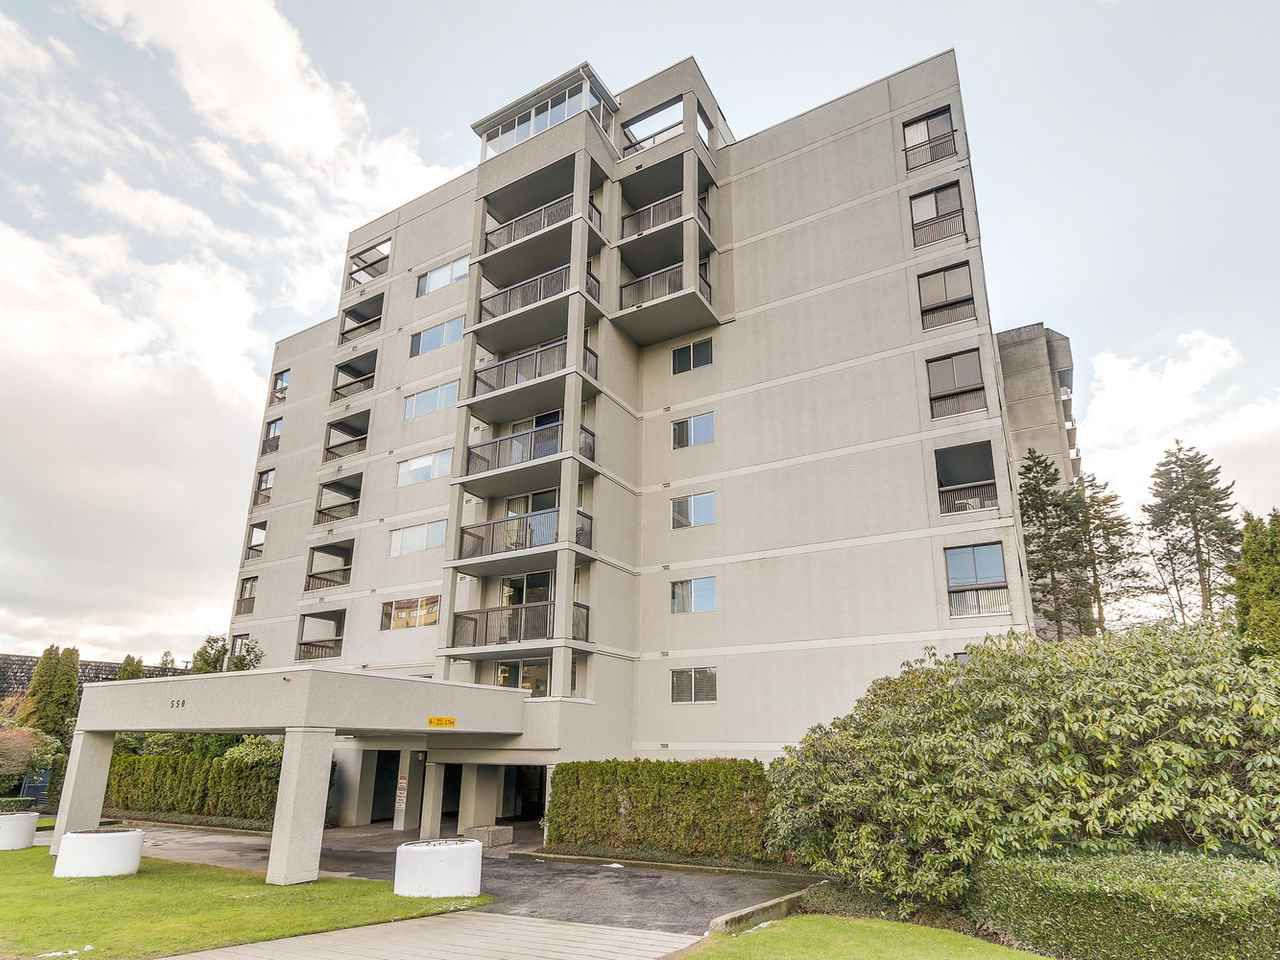 """Main Photo: 603 550 EIGHTH Street in New Westminster: Uptown NW Condo for sale in """"PARK RIDGE"""" : MLS®# R2142092"""